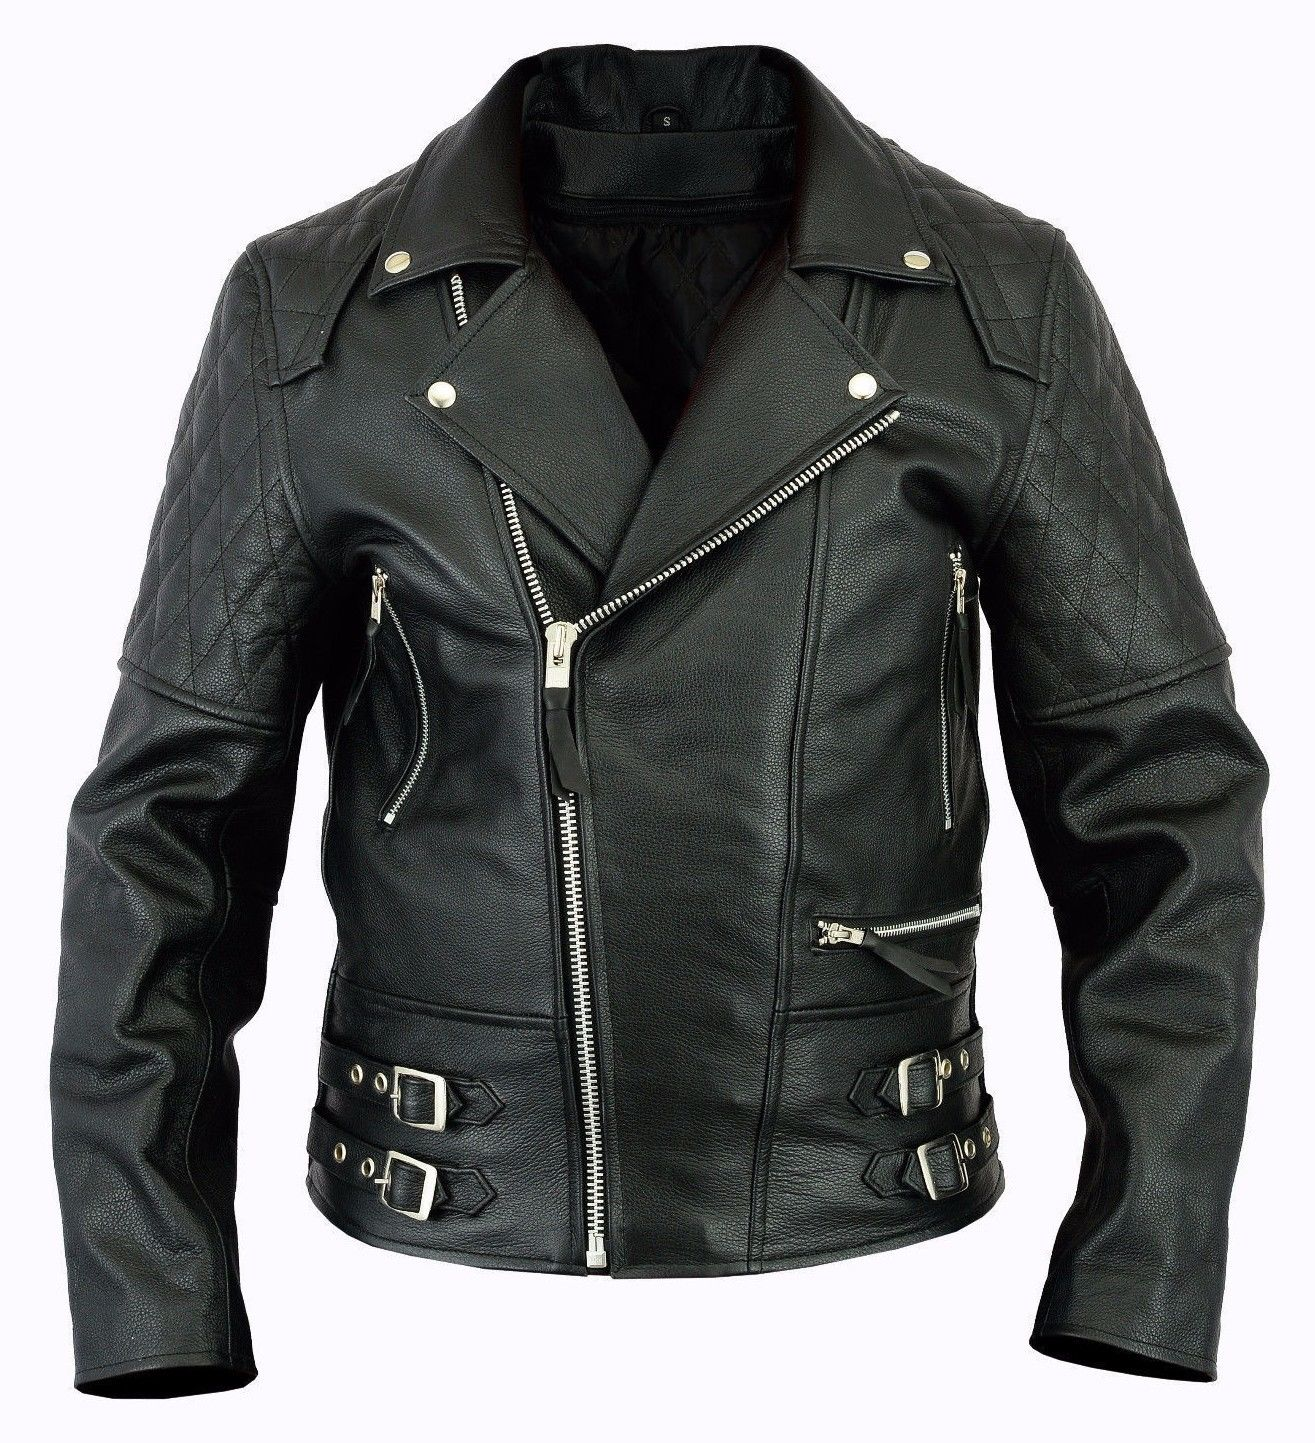 Men motorcycle biker vintage brando leather jacket with removable protection